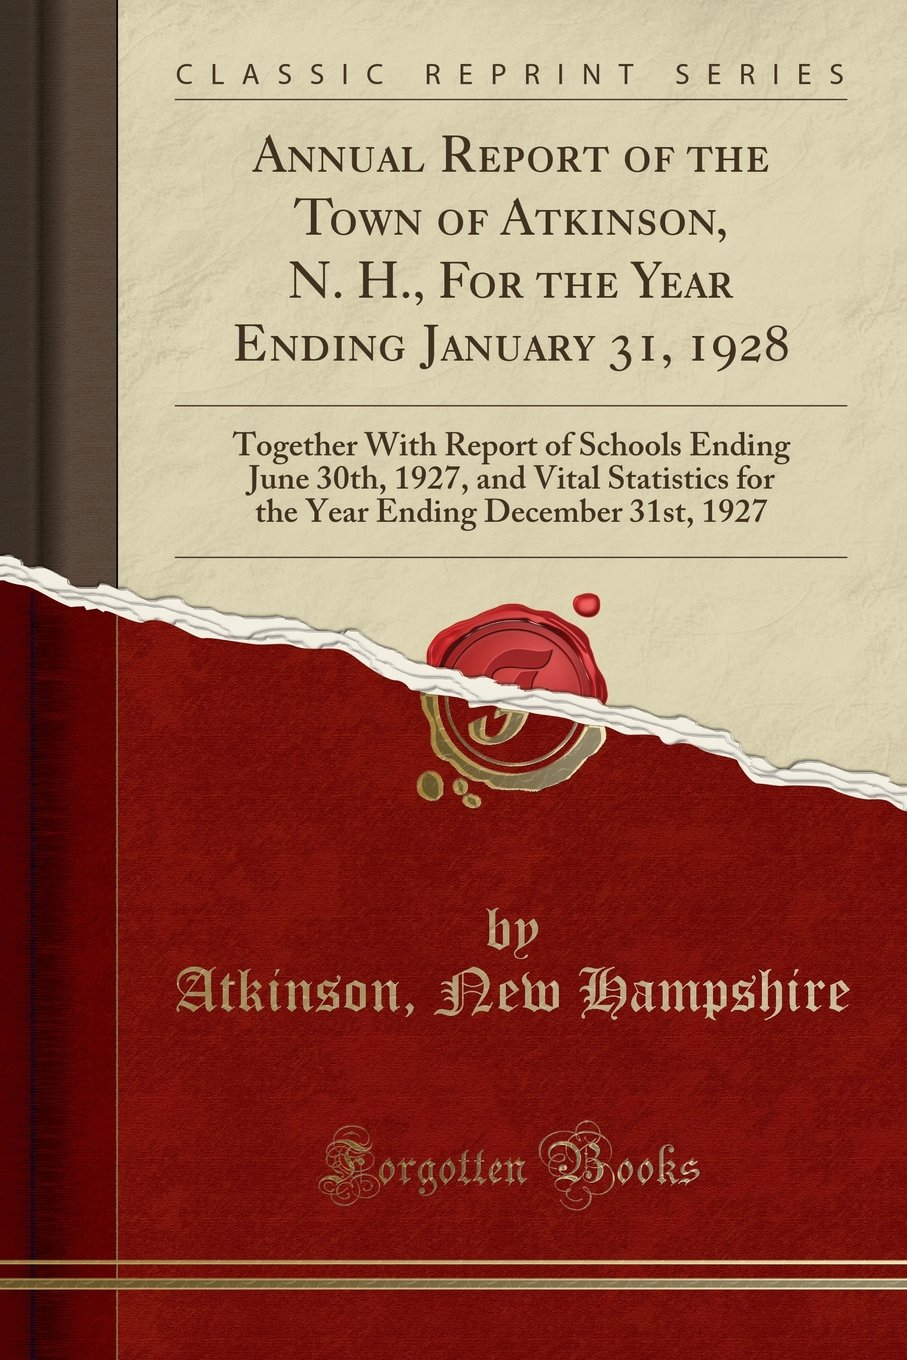 Download Annual Report of the Town of Atkinson, N. H., For the Year Ending January 31, 1928: Together With Report of Schools Ending June 30th, 1927, and Vital ... Ending December 31st, 1927 (Classic Reprint) pdf